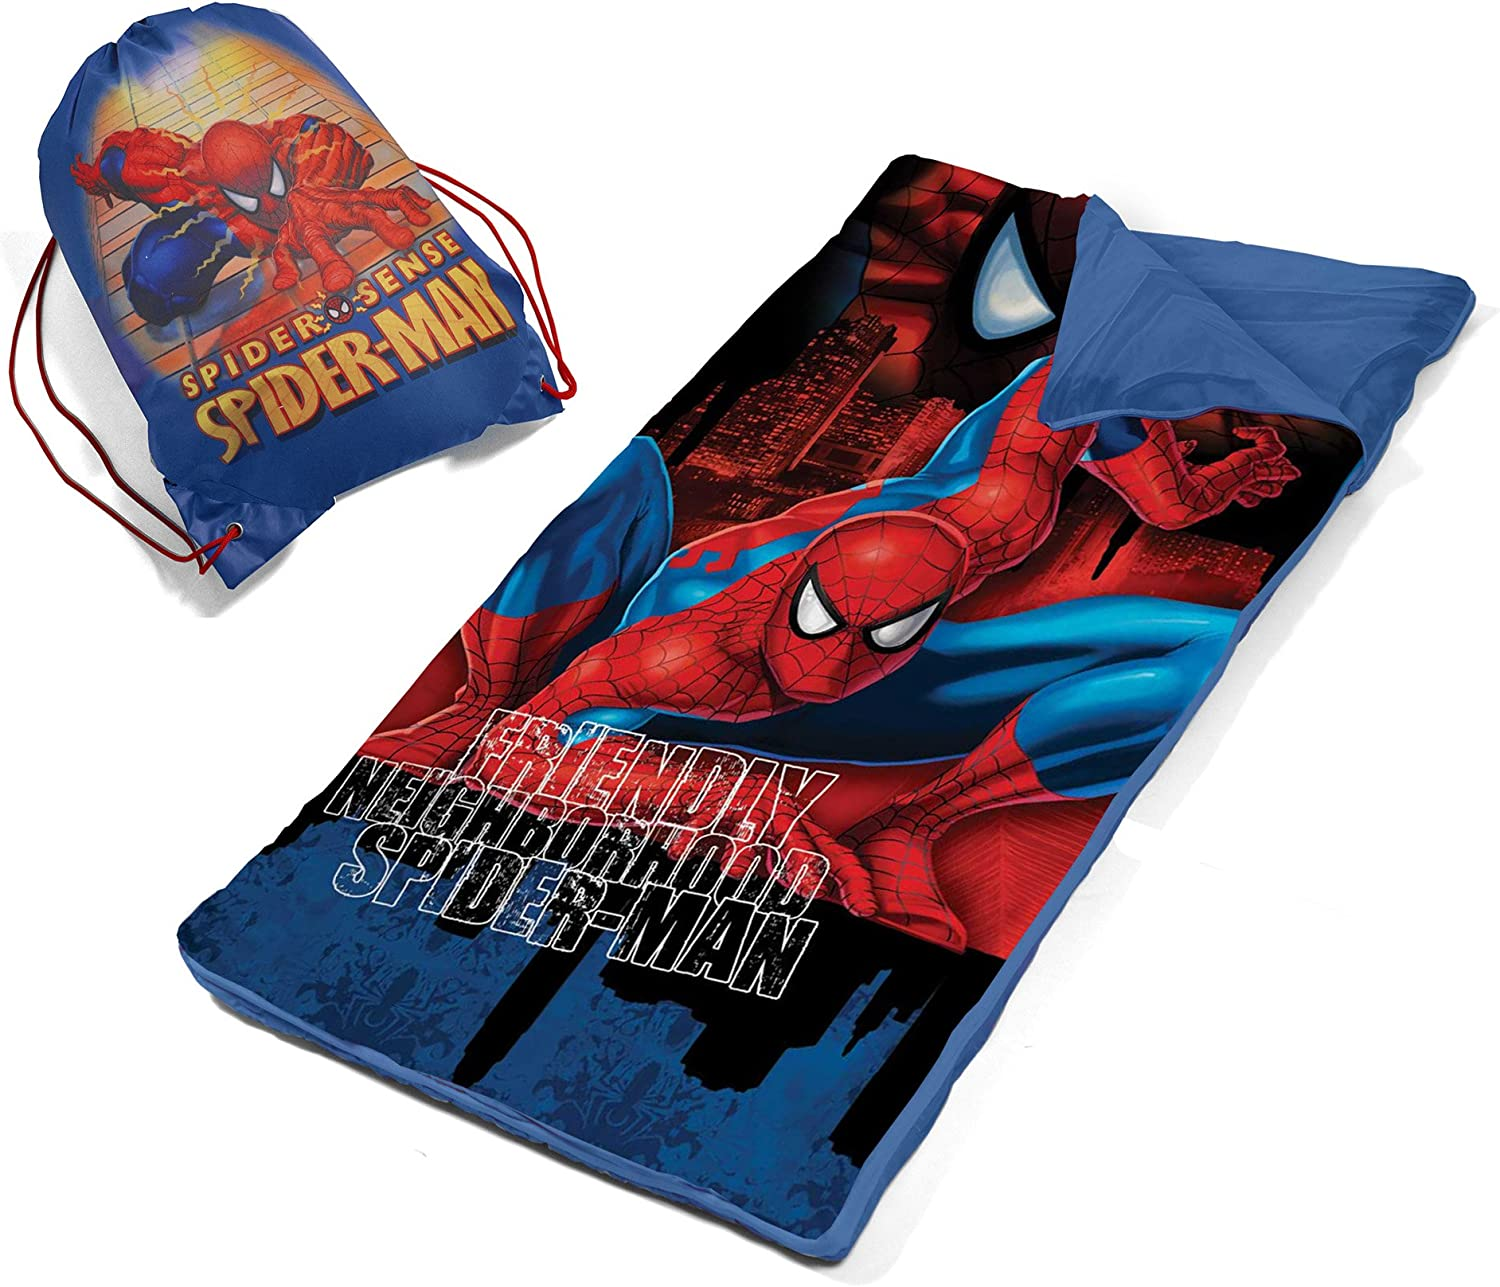 Marvel Spiderman Slumber Bag Set